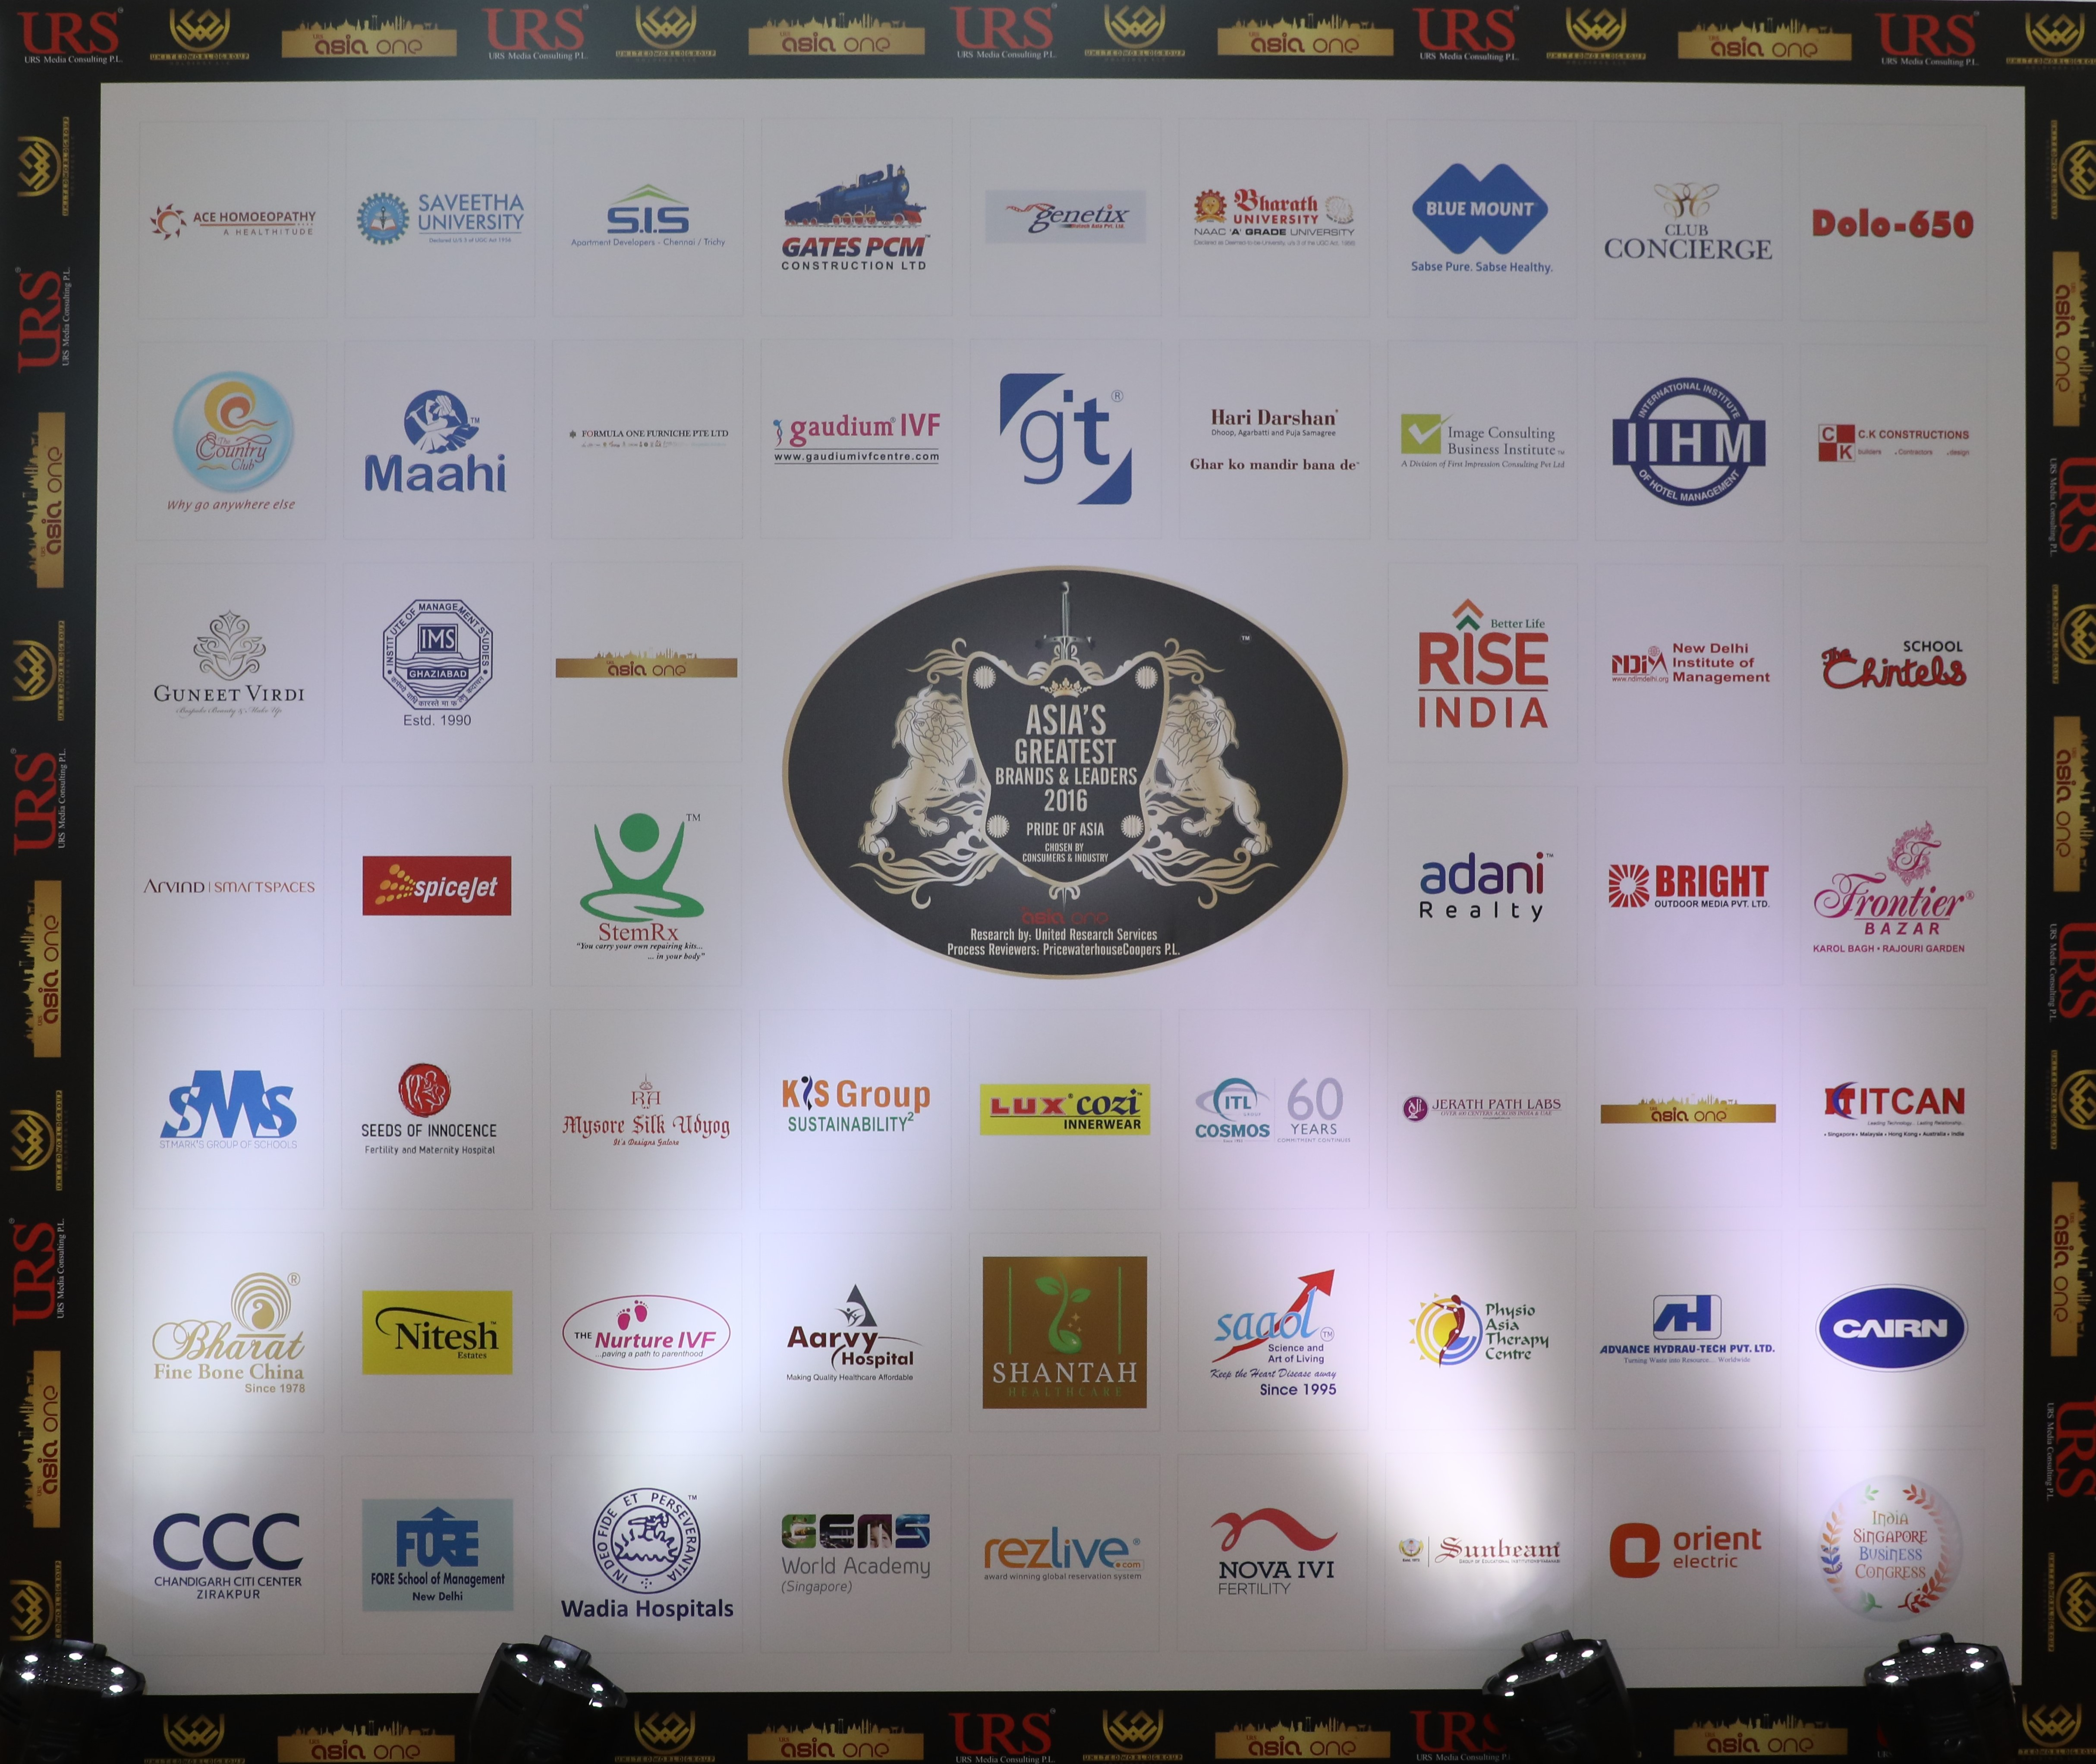 Asia's Greatest Brands & Leaders Awards